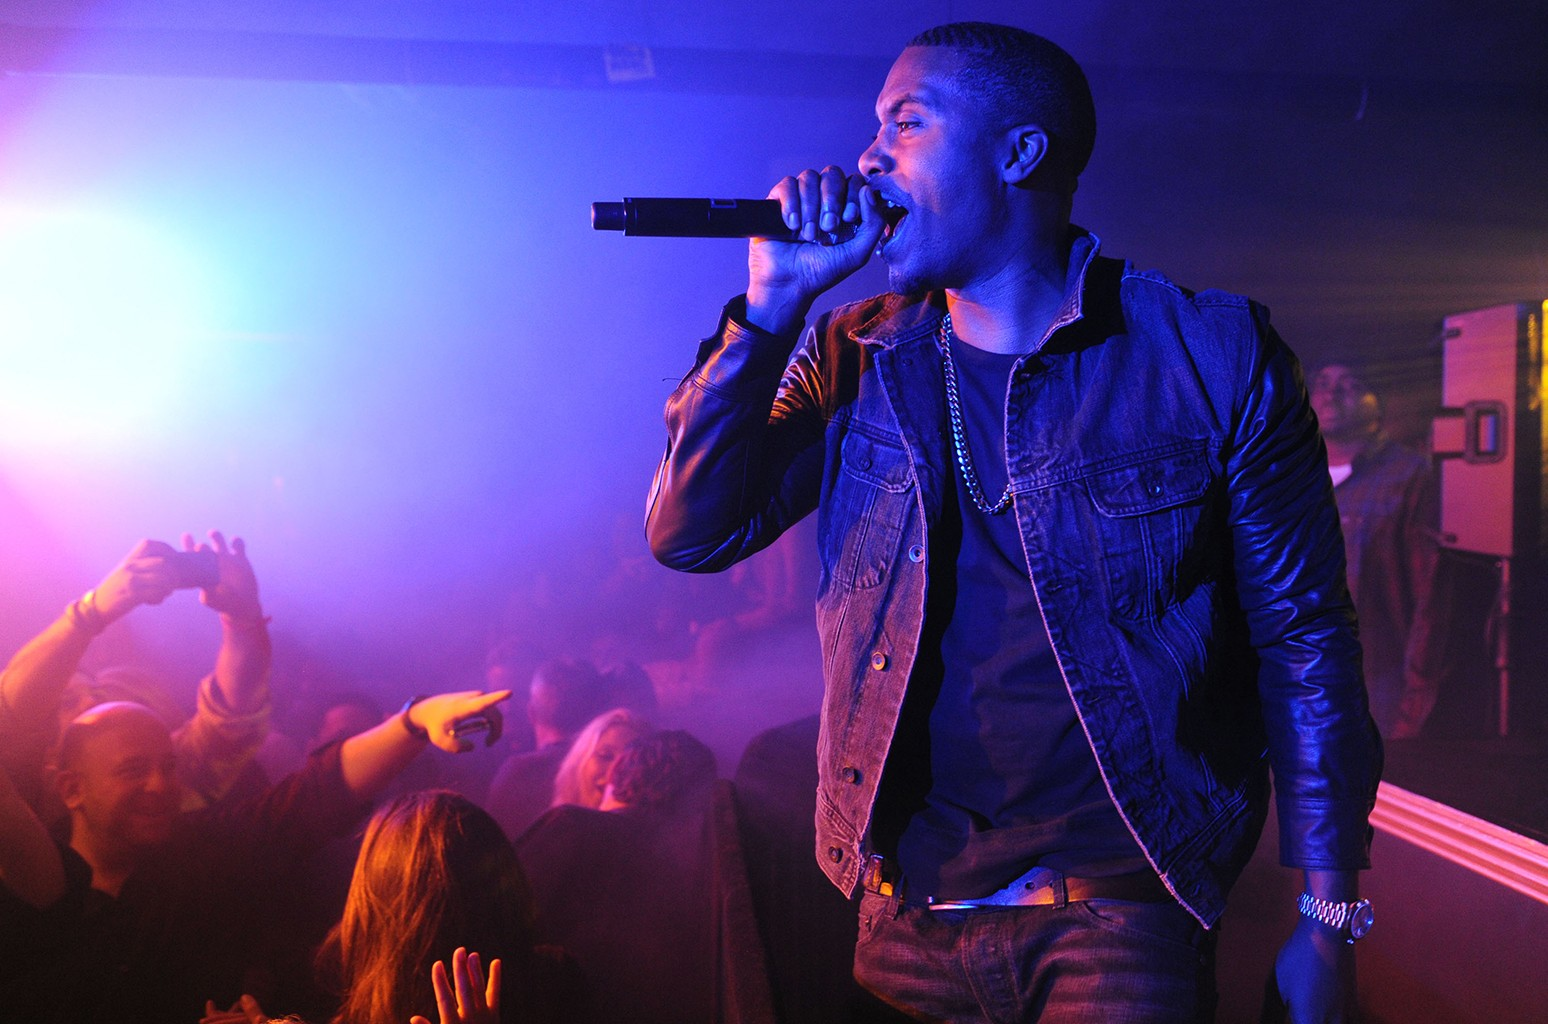 Nas performs at TAO Nightclub Sundance on Jan. 19, 2013 in New York City.